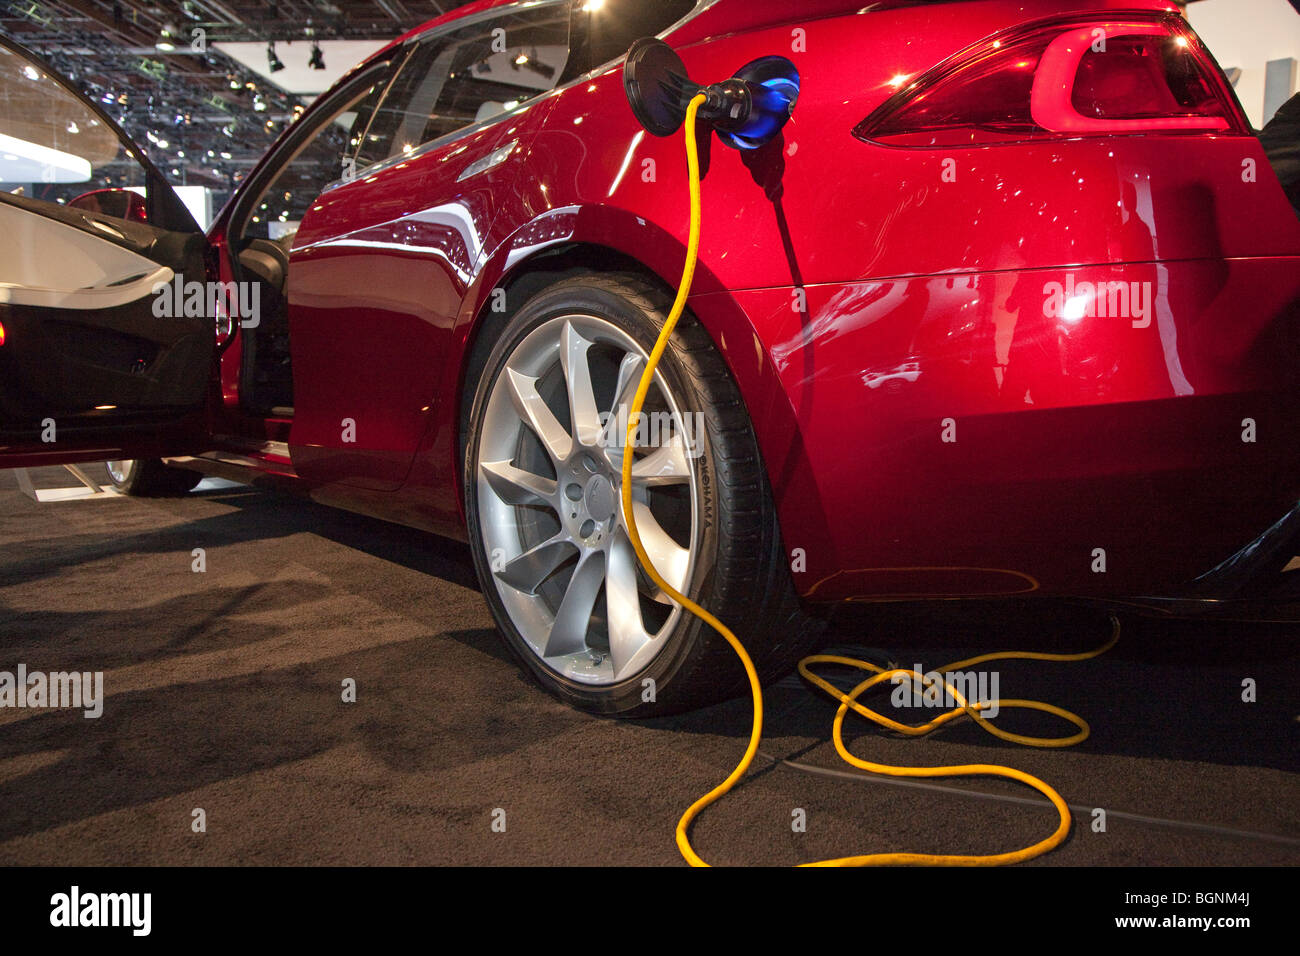 The Tesla Model S electric sports car - Stock Image